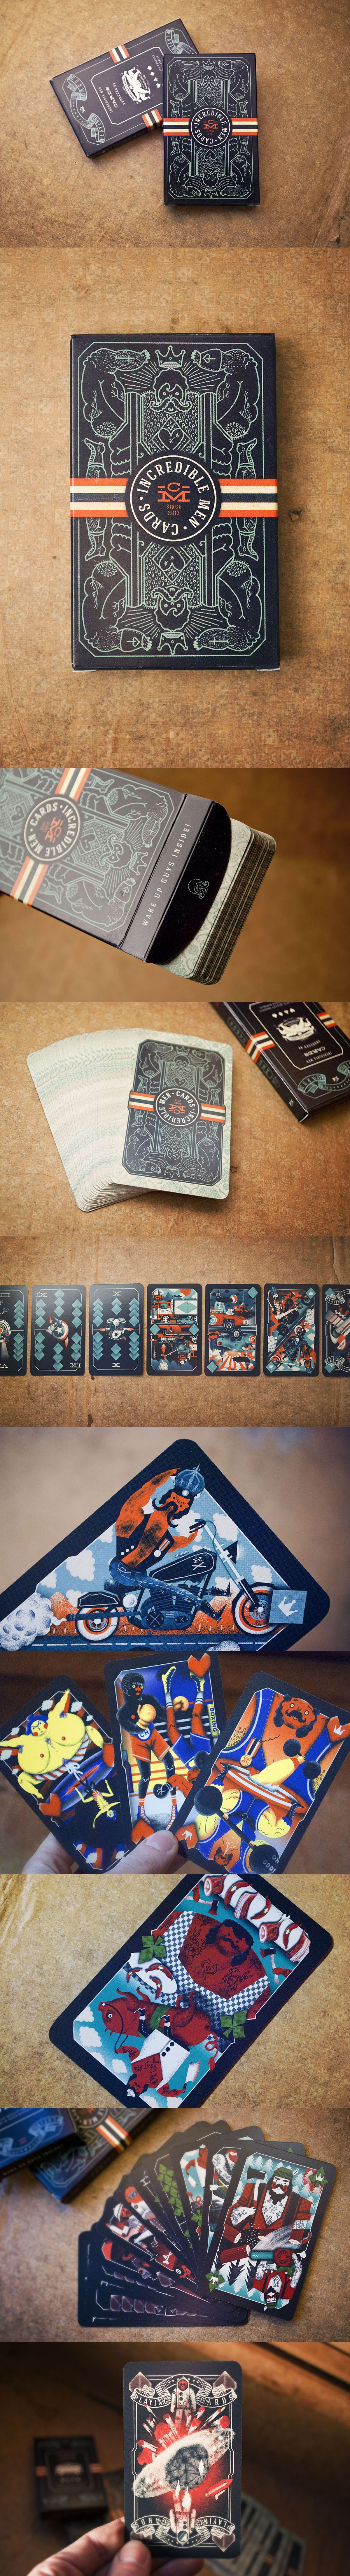 Physique Playing Card by Collectable Playing Cards Poker Spielkarten